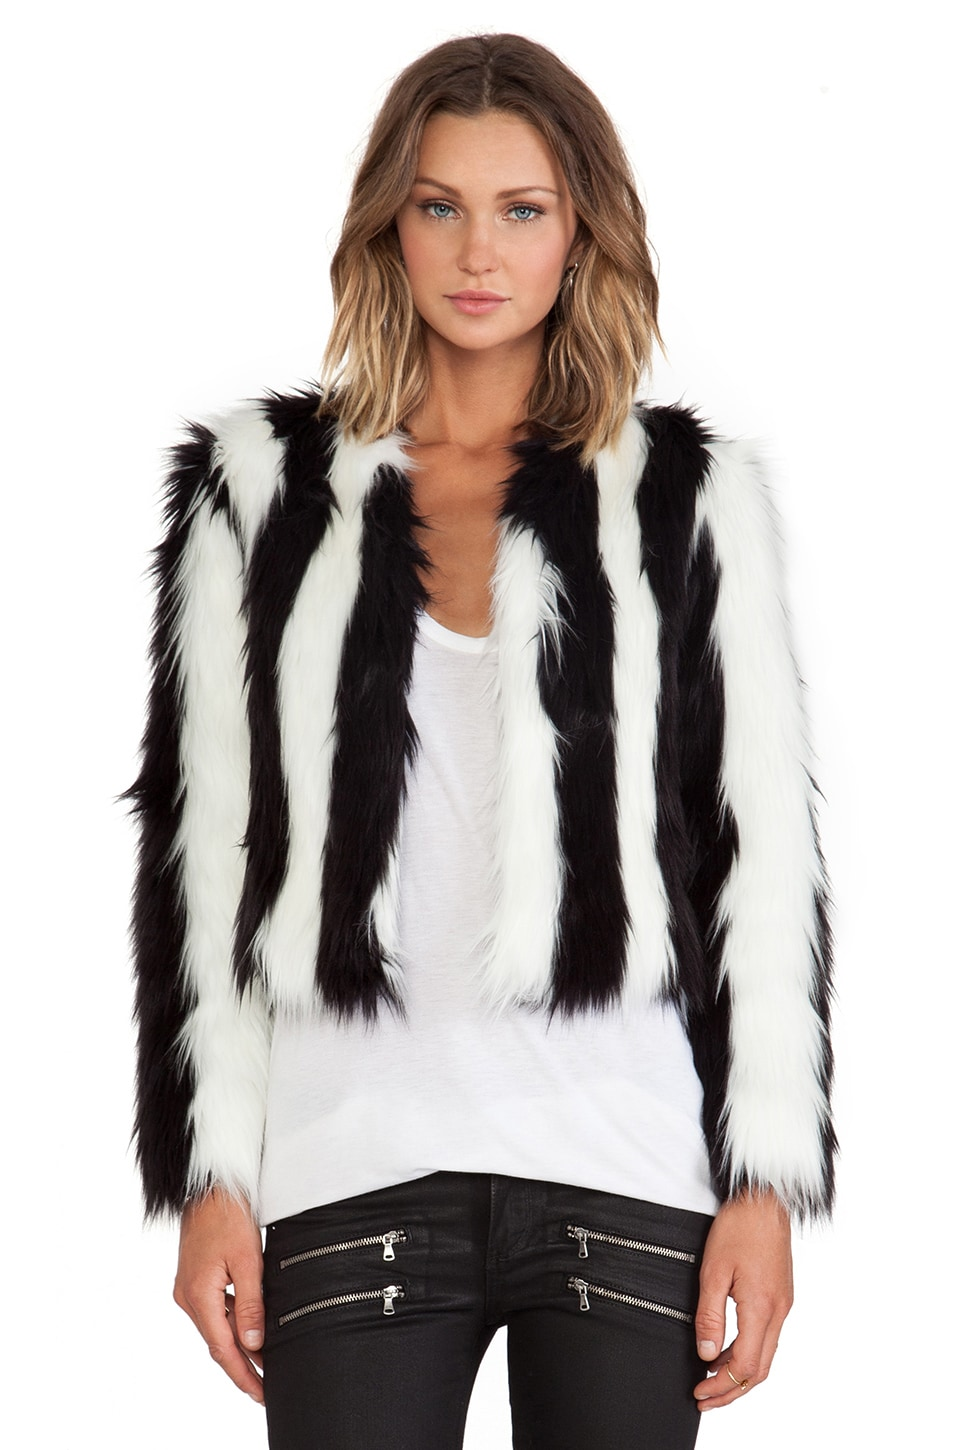 BSABLE Lauren Faux Fur Jacket in Black & White Stripe